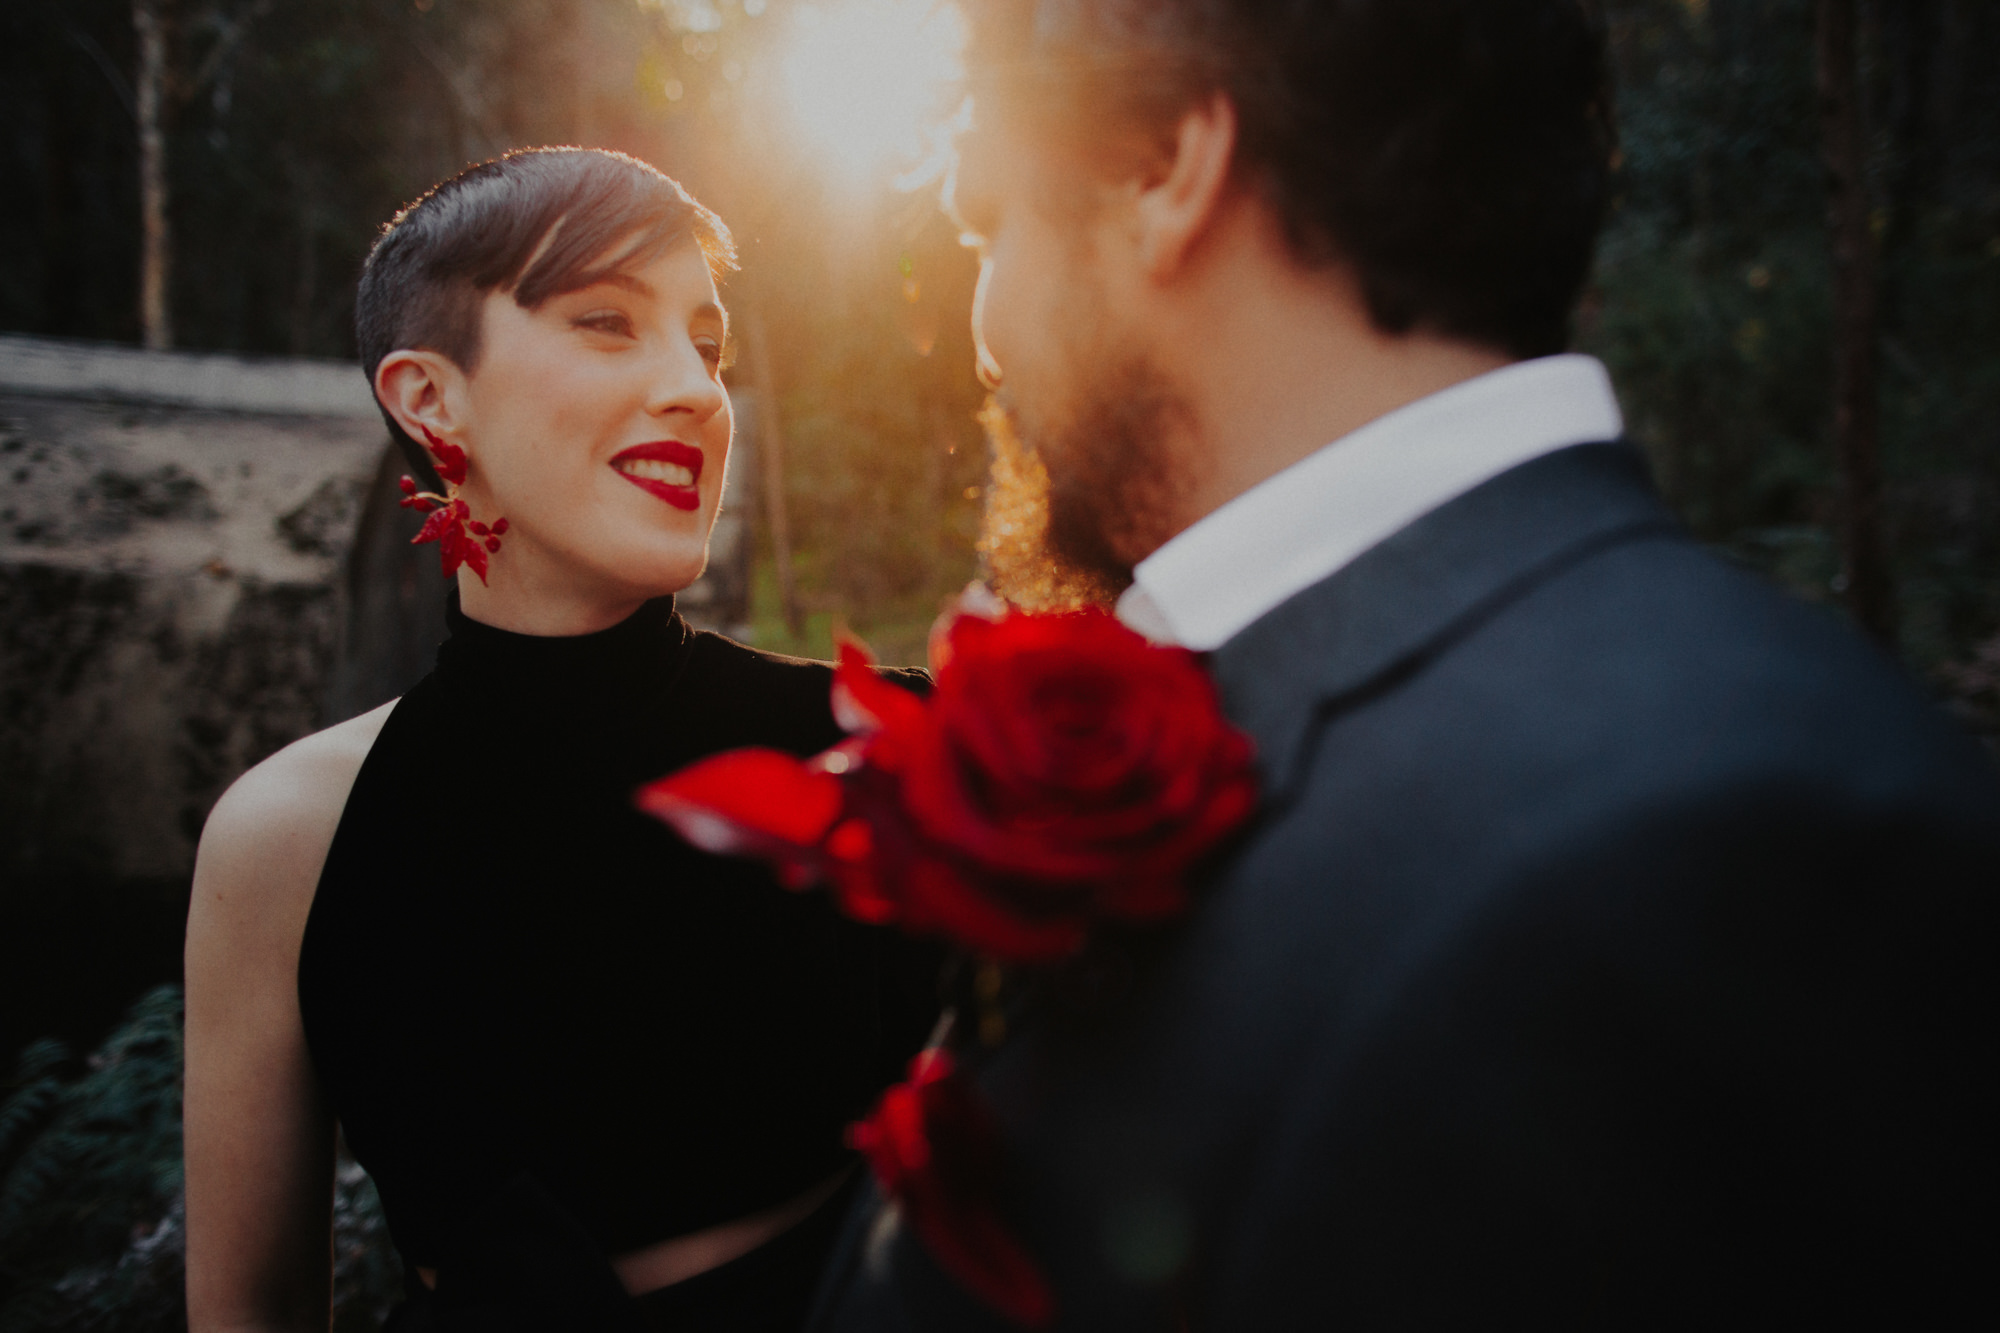 Bride in black dress with red accents with groom in golden hour  - photo by Dan O'Day